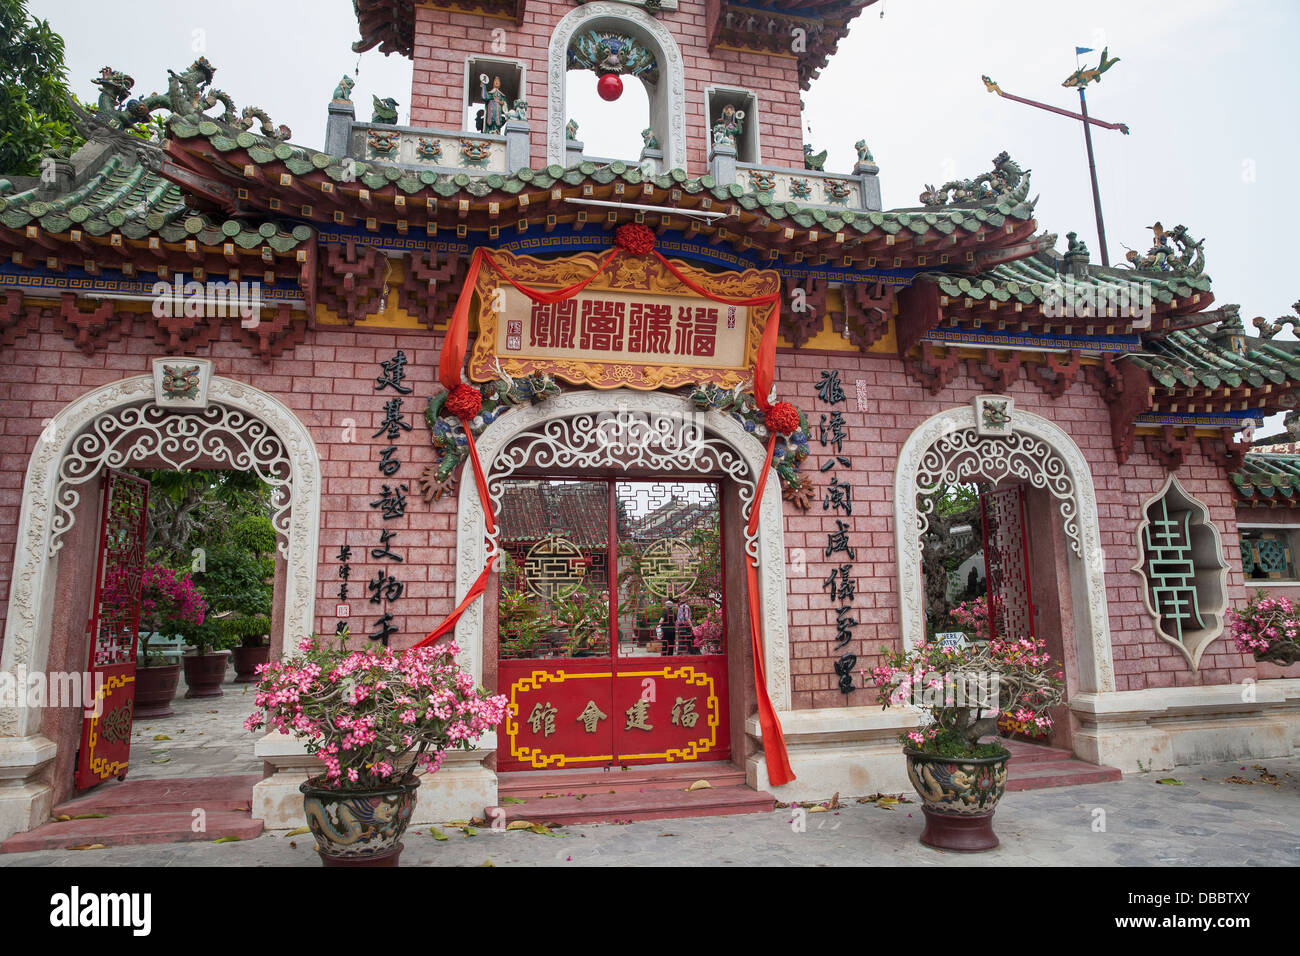 Outer wall and entrance of Phuc Kien (Fukien) Assembly Hall in Old Quarter, Hoi An, Vietnam, Southeast Asia - Stock Image